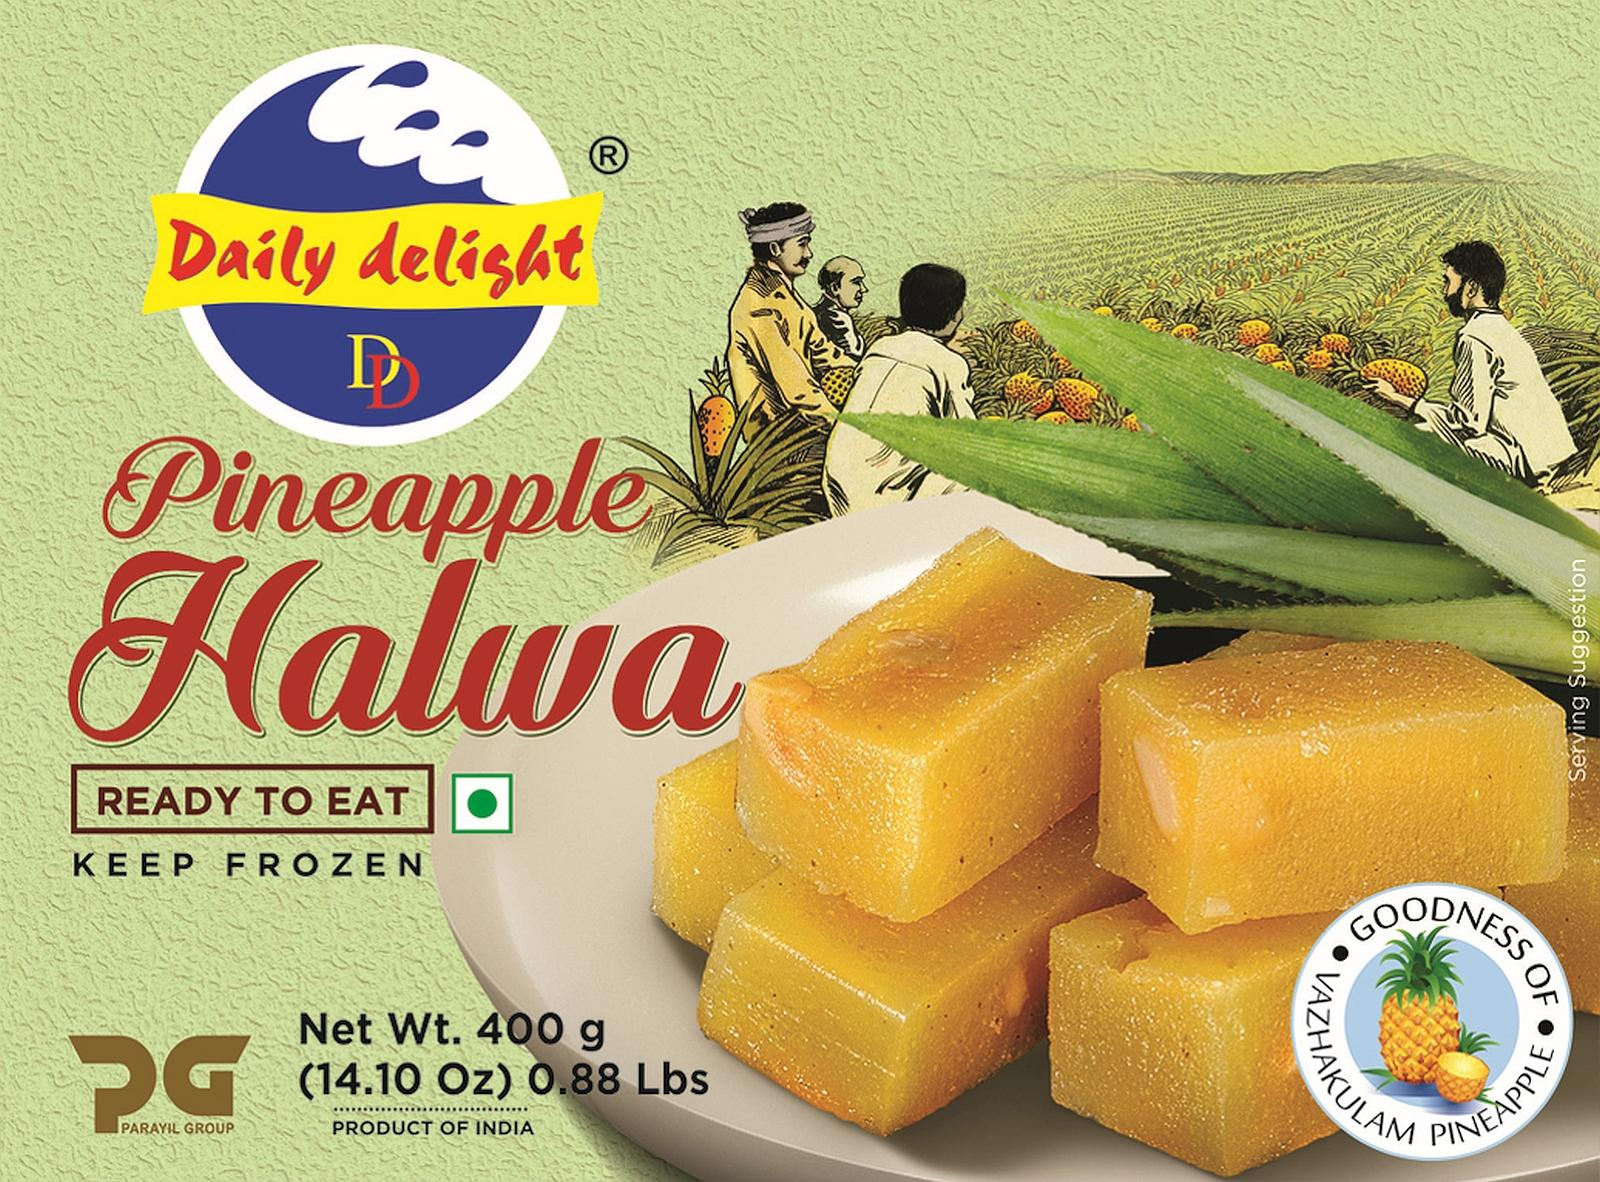 Daily Delight Halwa Pineapple